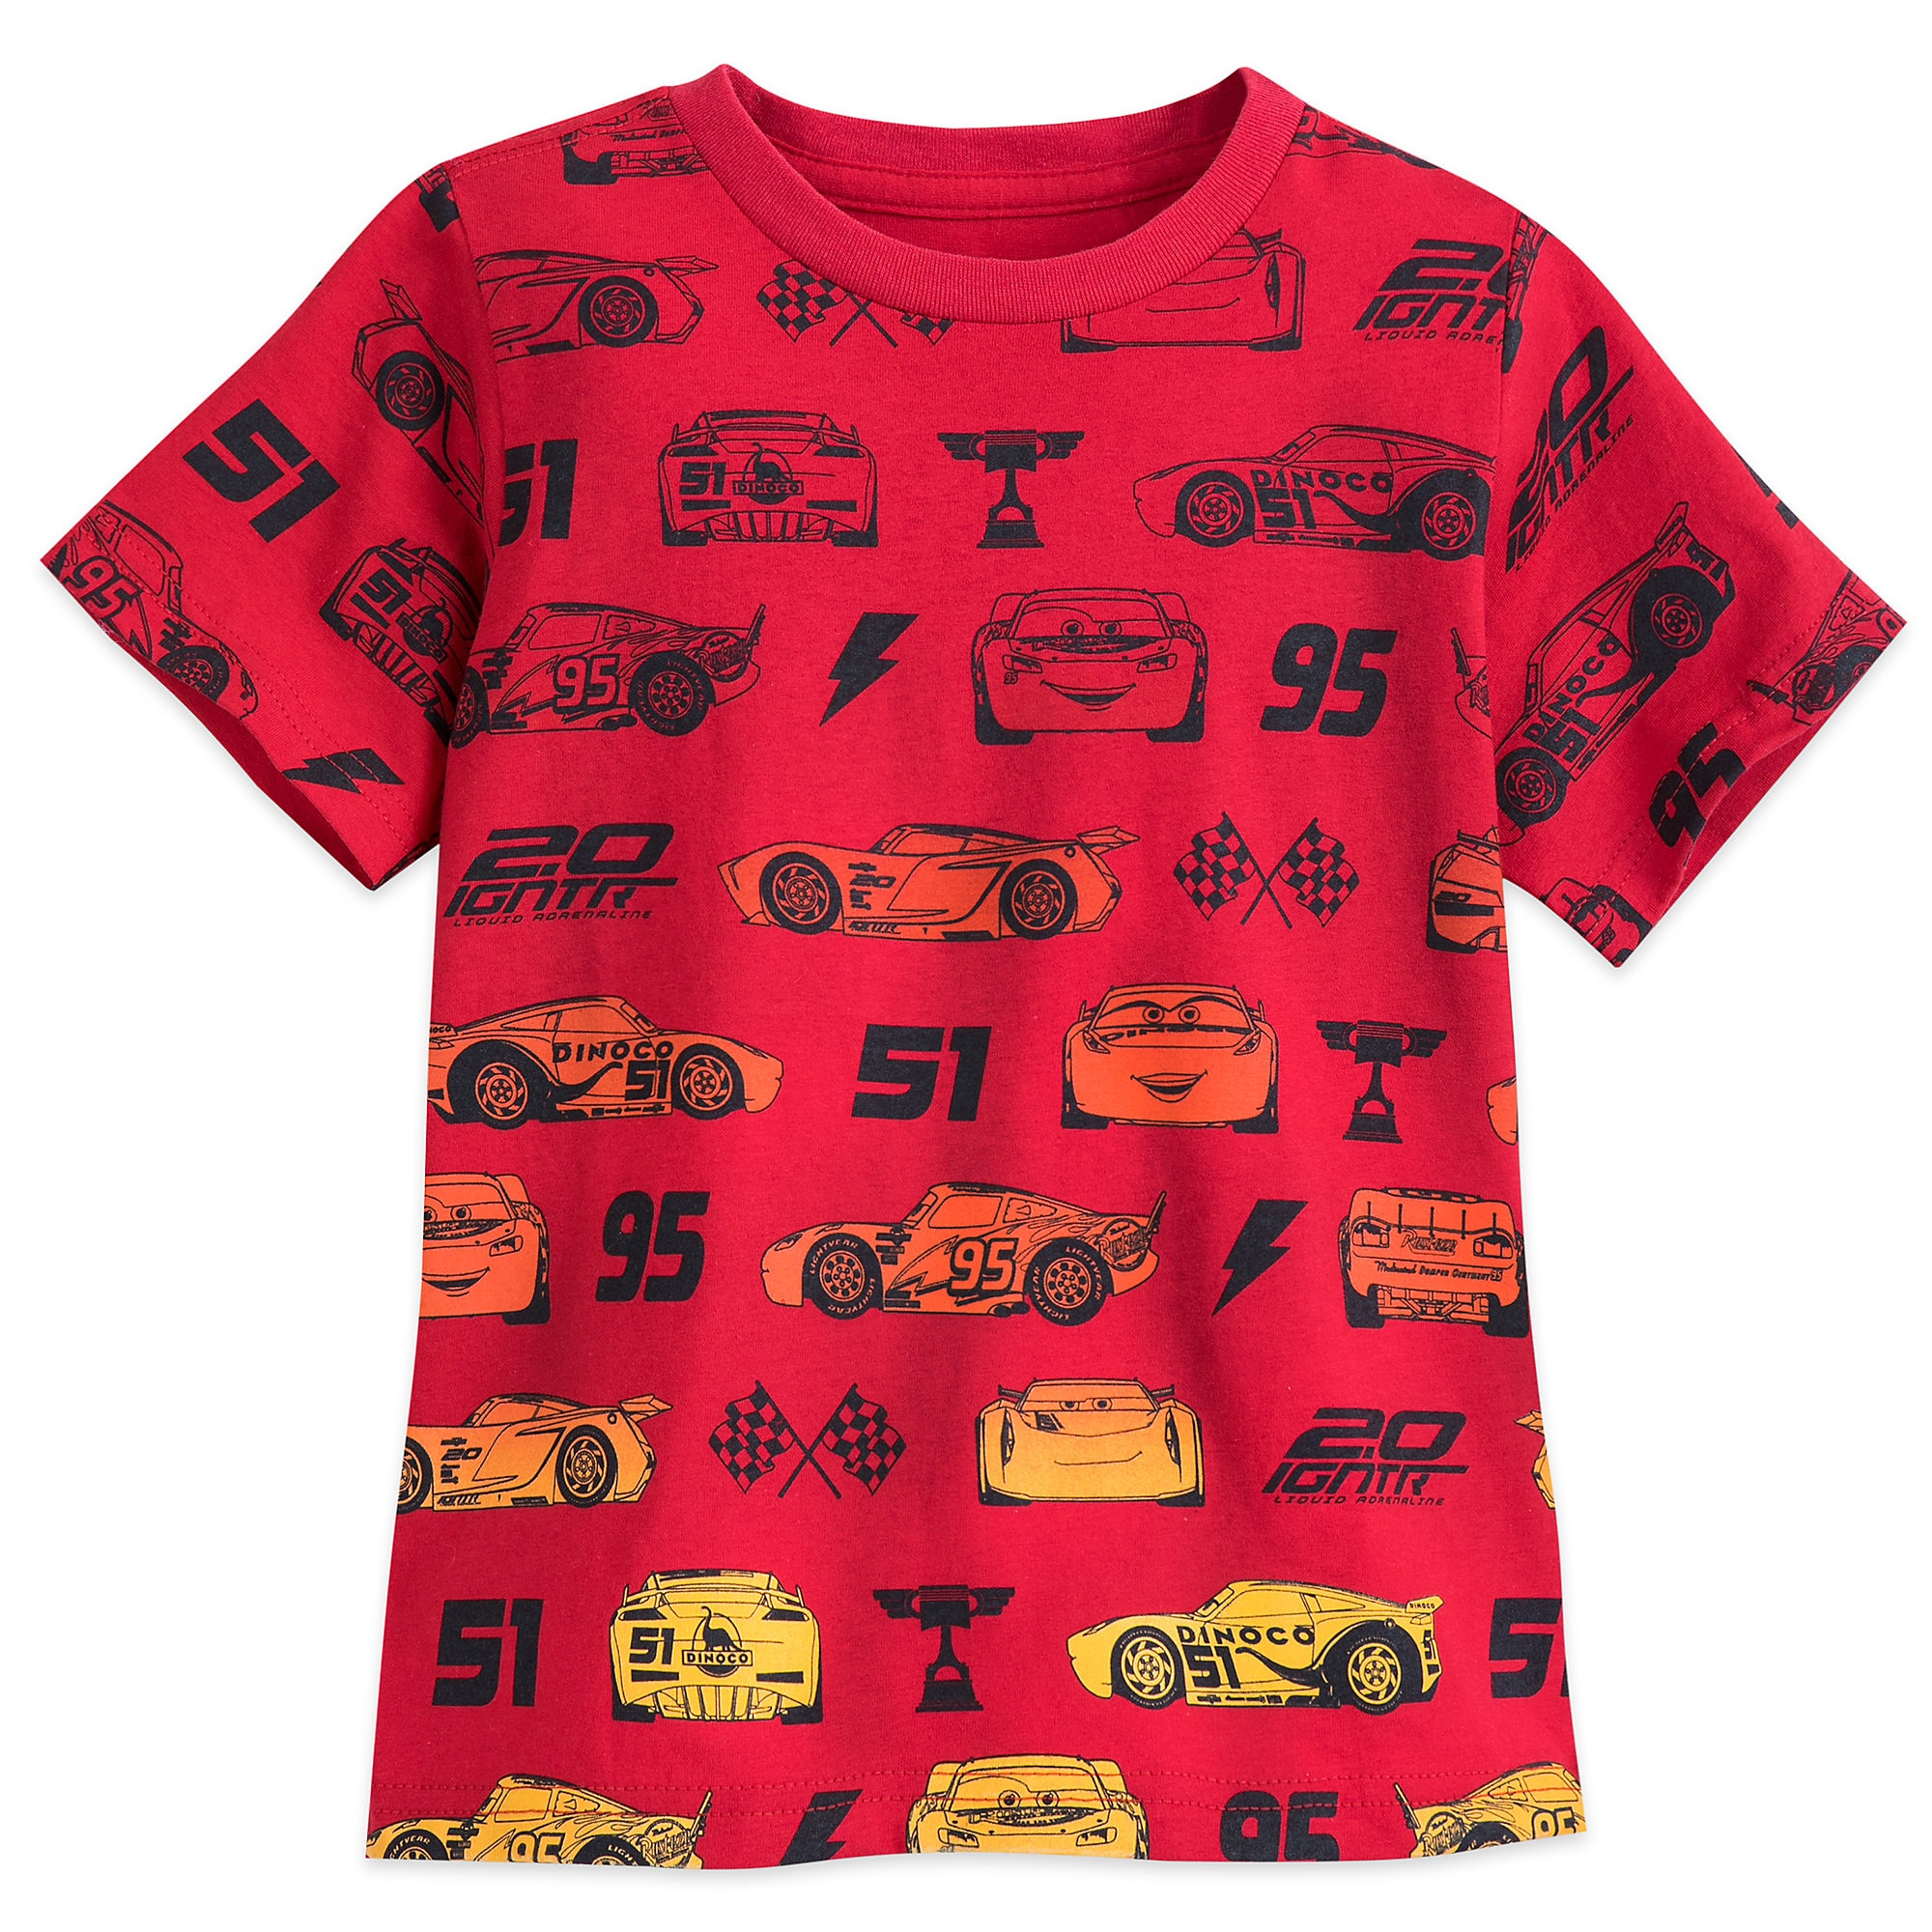 Cars 3 T-Shirt for Boys